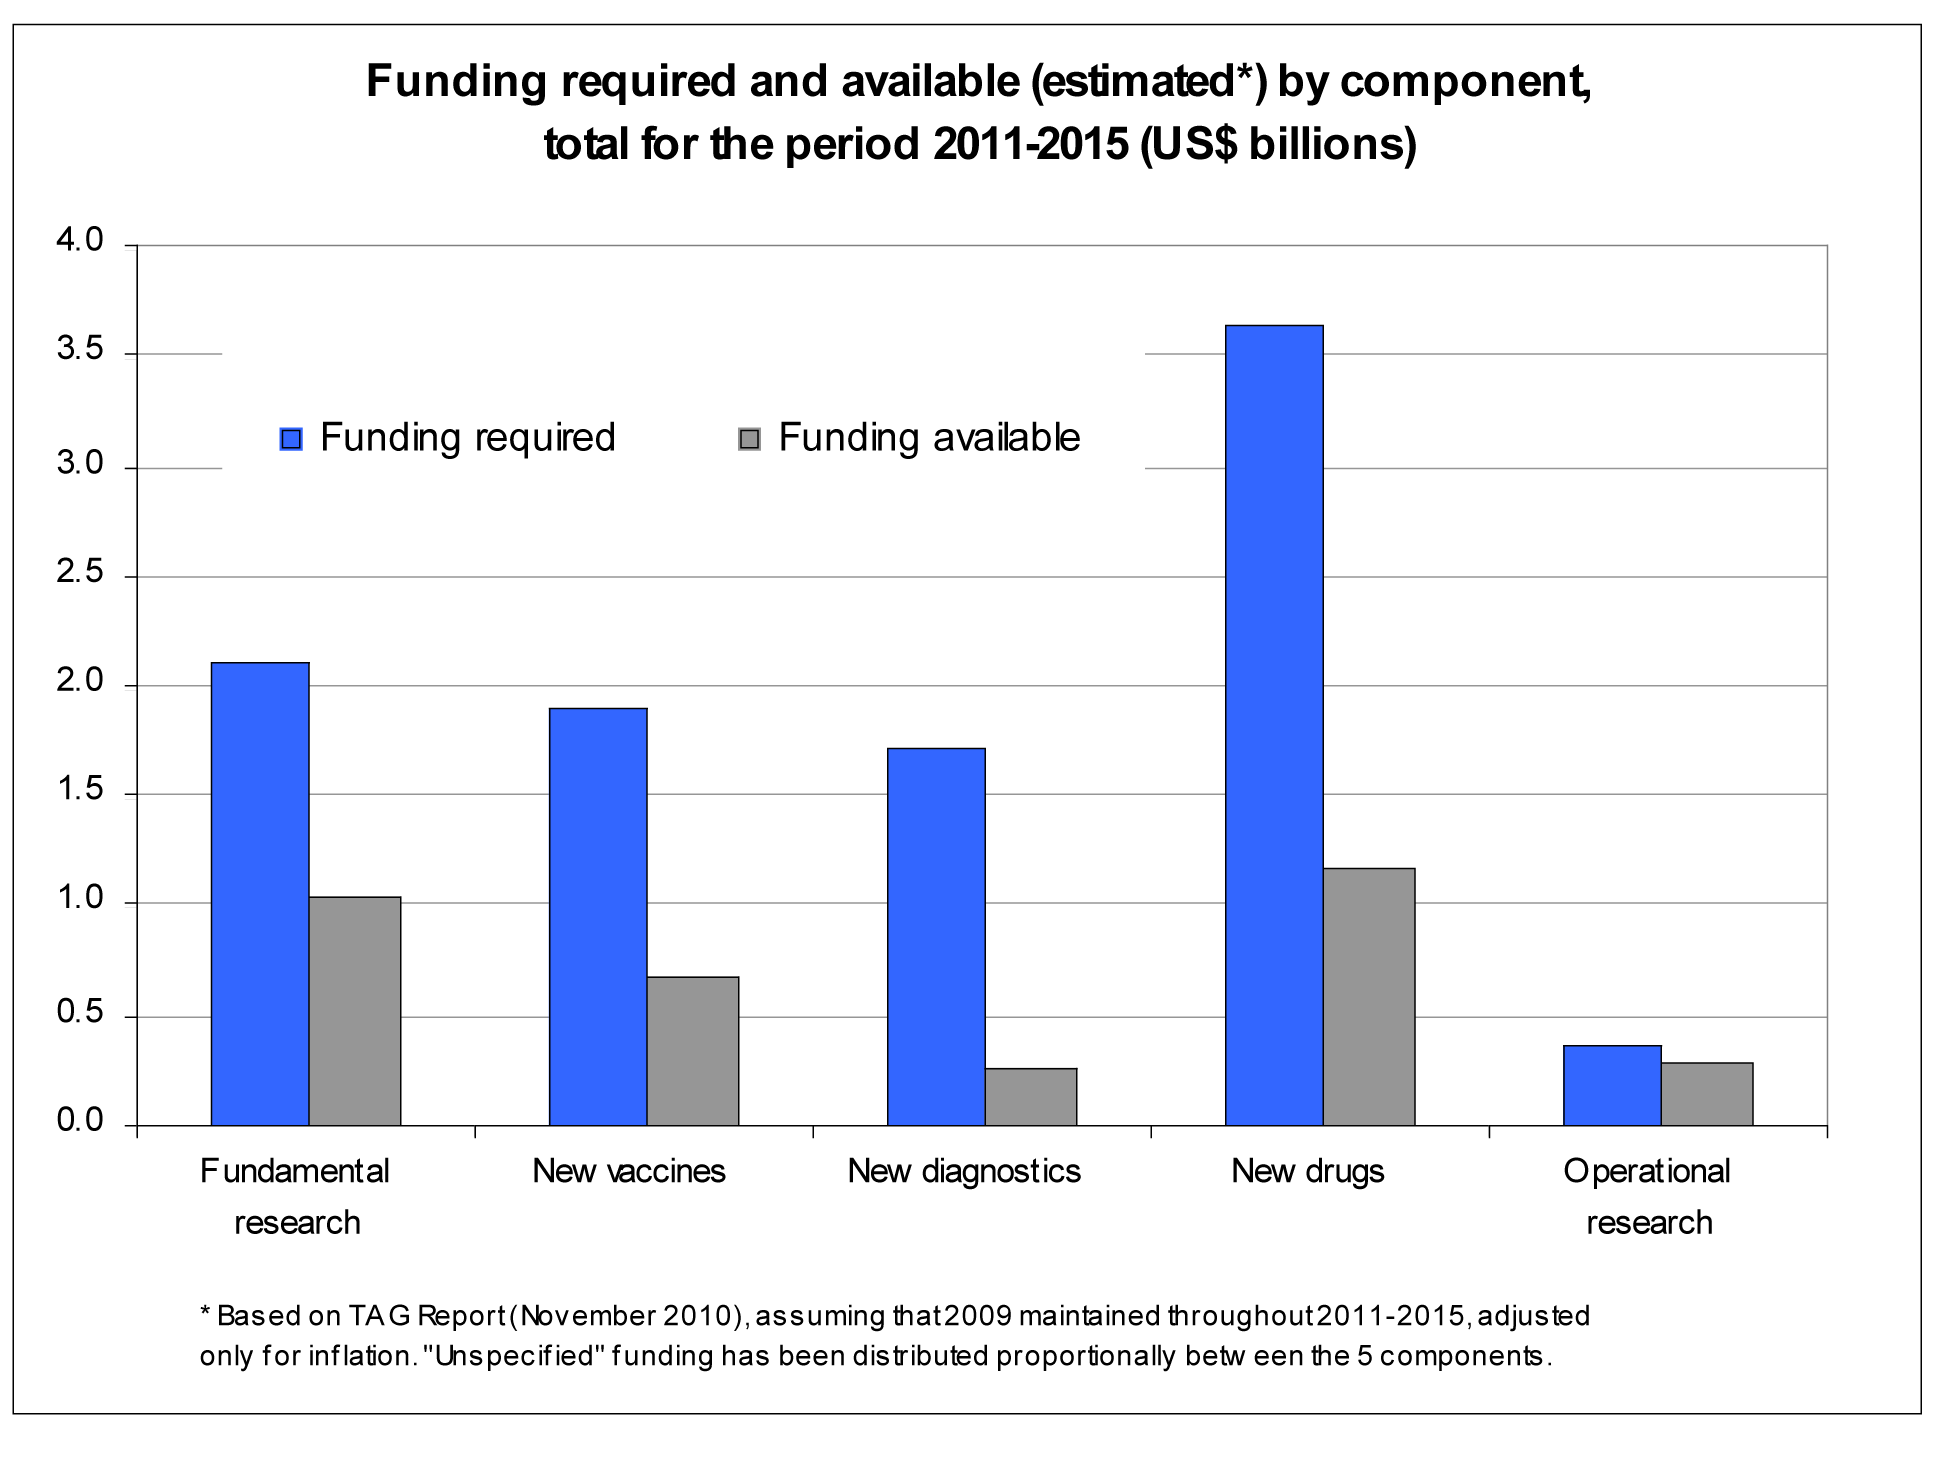 Funding required and available by research component 2011–2015.